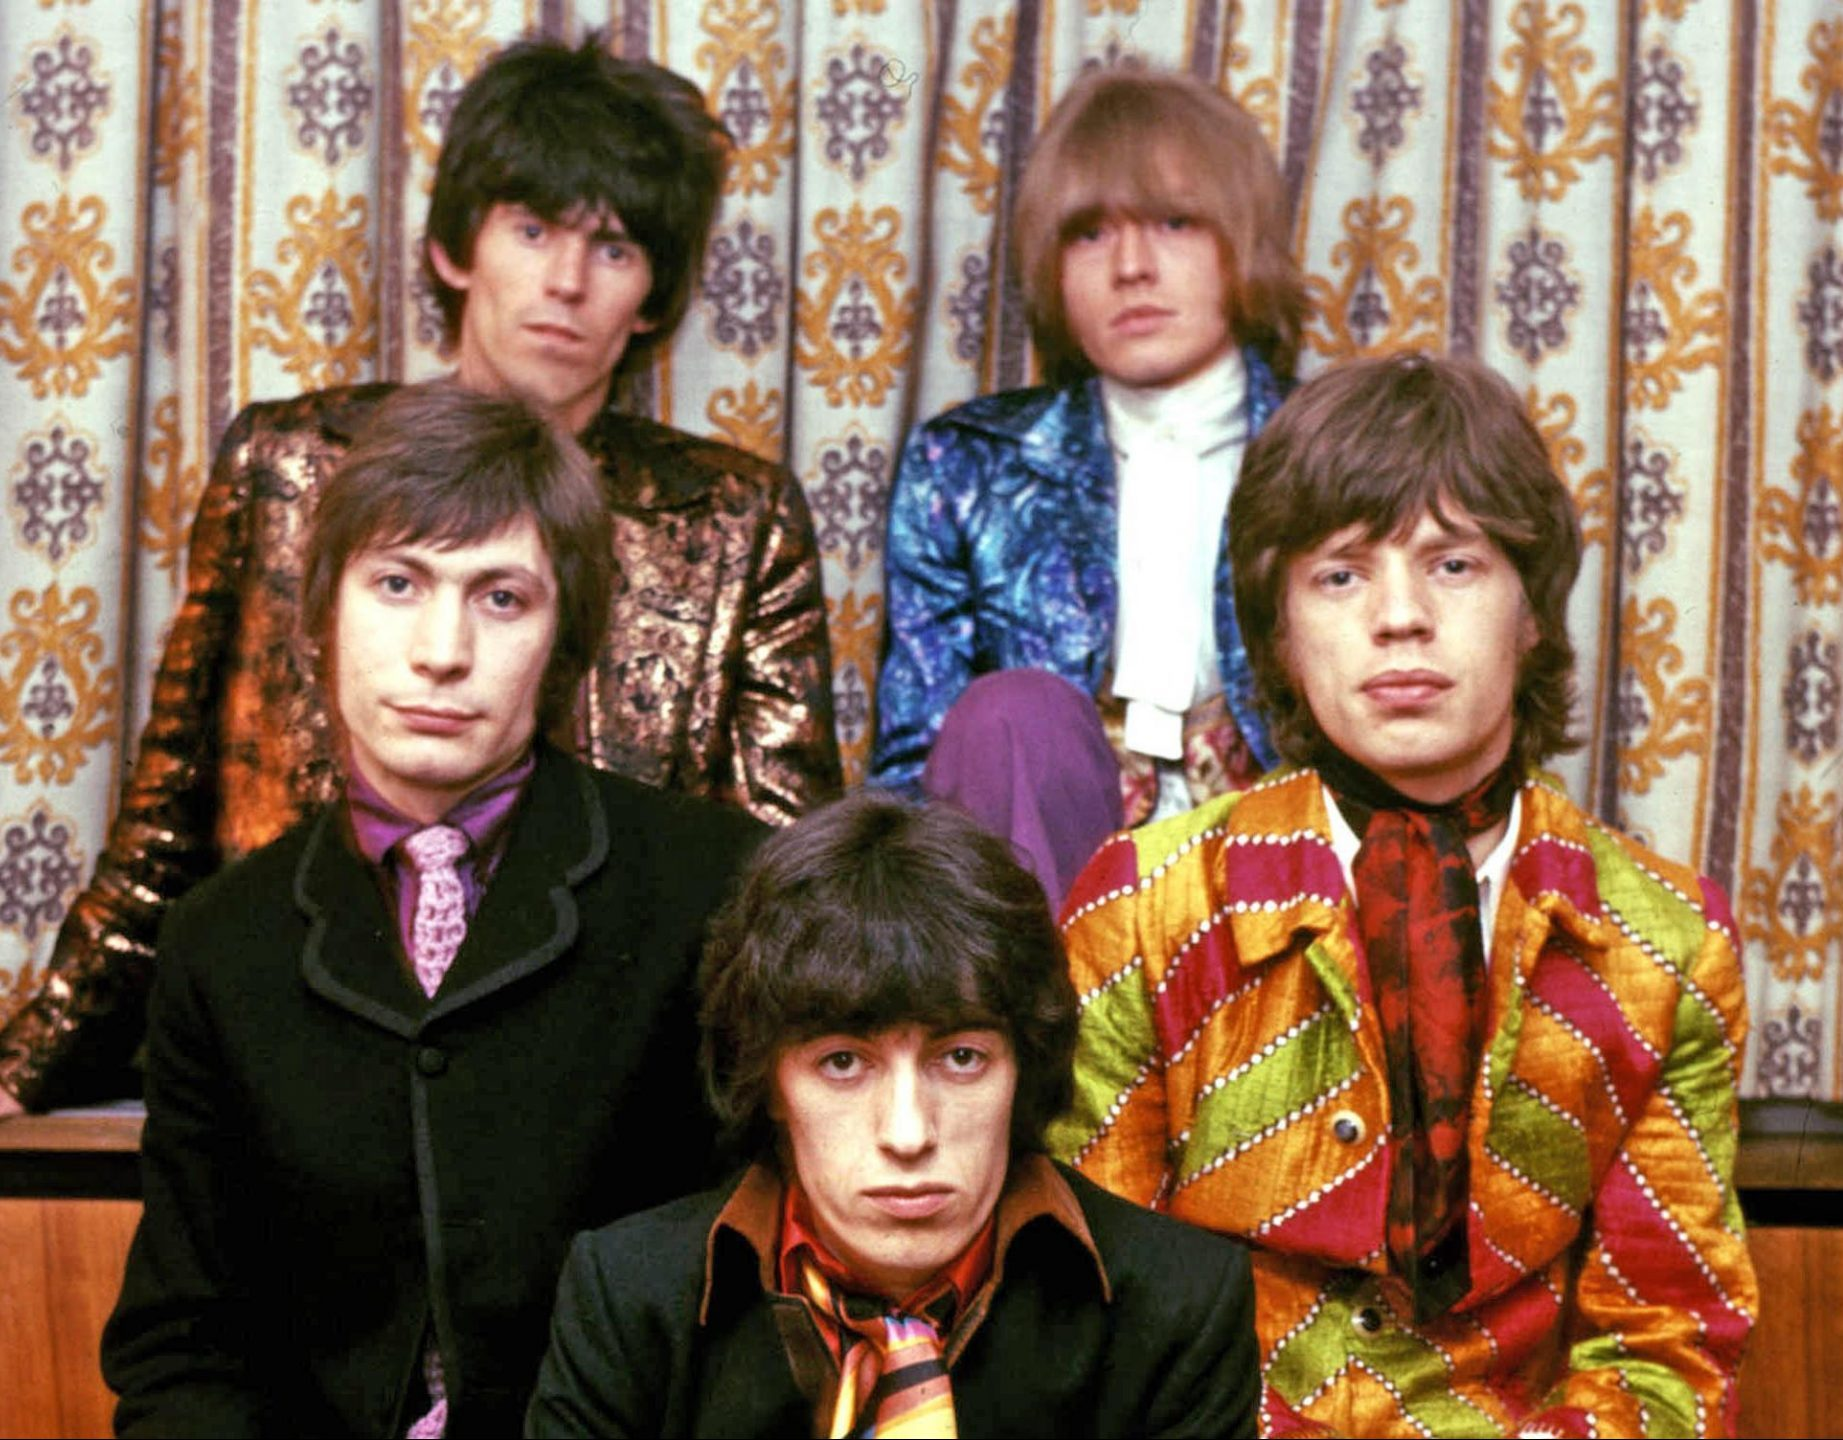 methode times prod web bin 0abdc7be a23d 11e9 b7db 61a6074b49a3 scaled e1606232332123 10 Things You Never Knew About The Rolling Stones